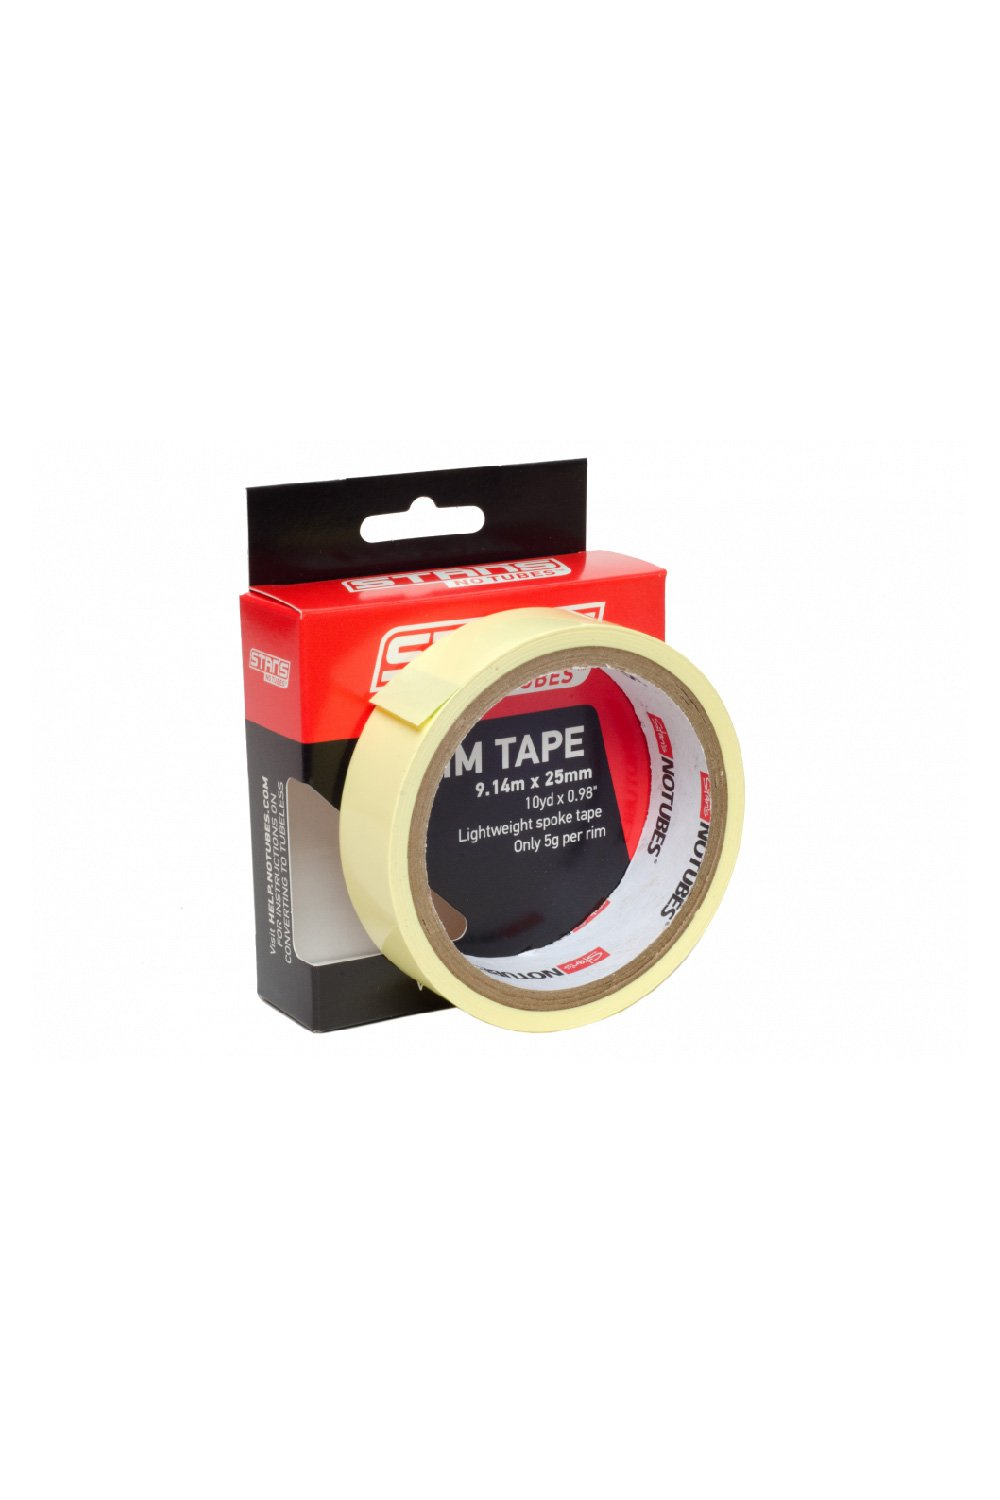 Stans Rim Tape 10yard X 30mm